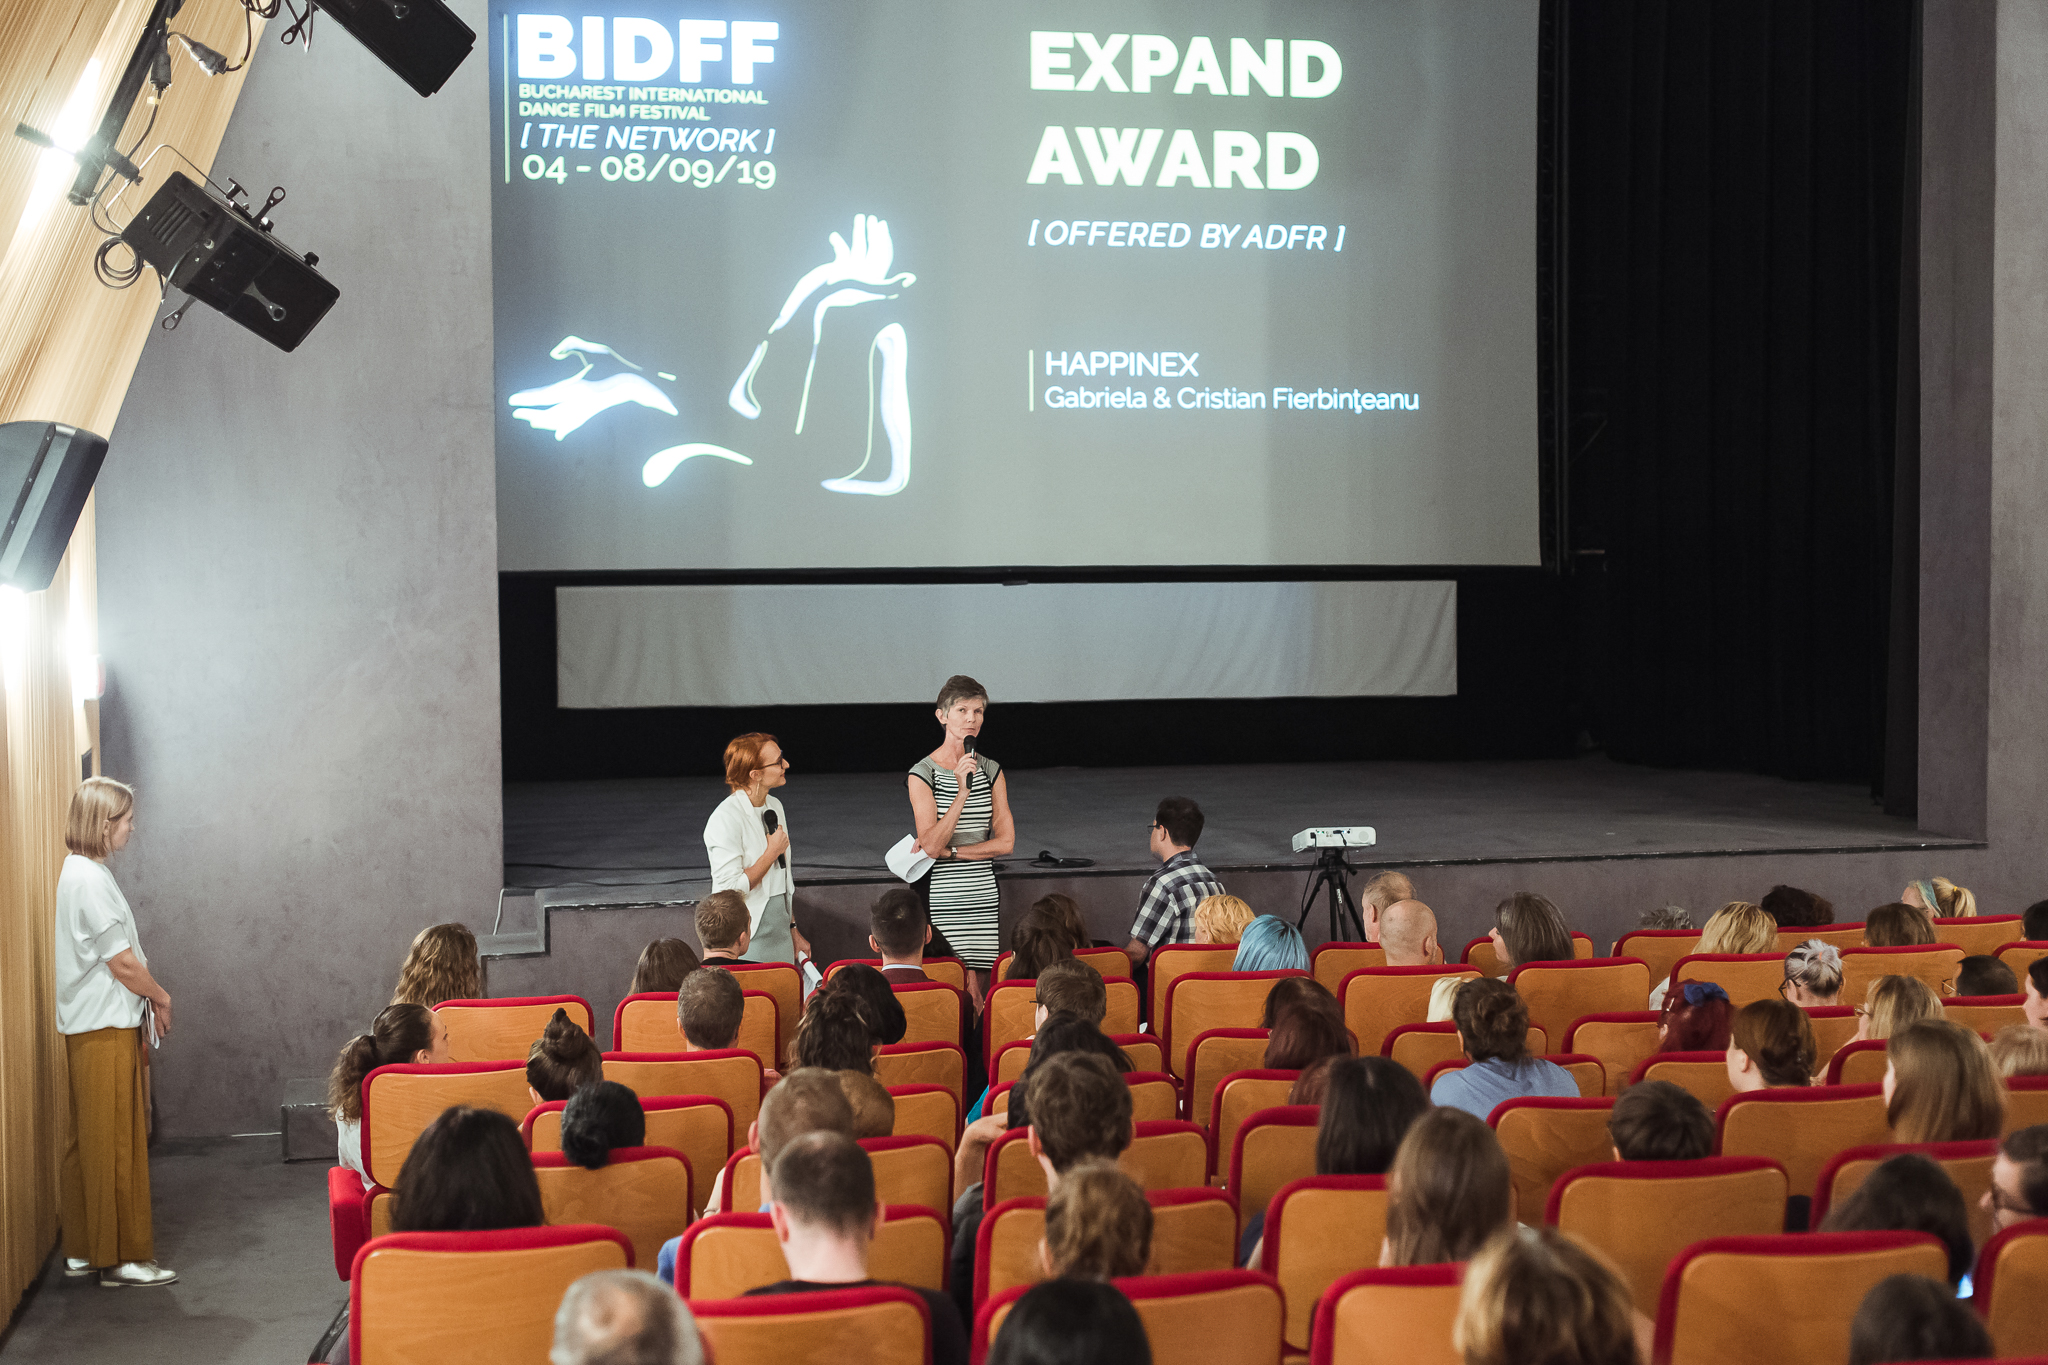 Cea de-a cincea ediție a Bucharest International Dance Film Festival  și-a desemnat câștigătorii